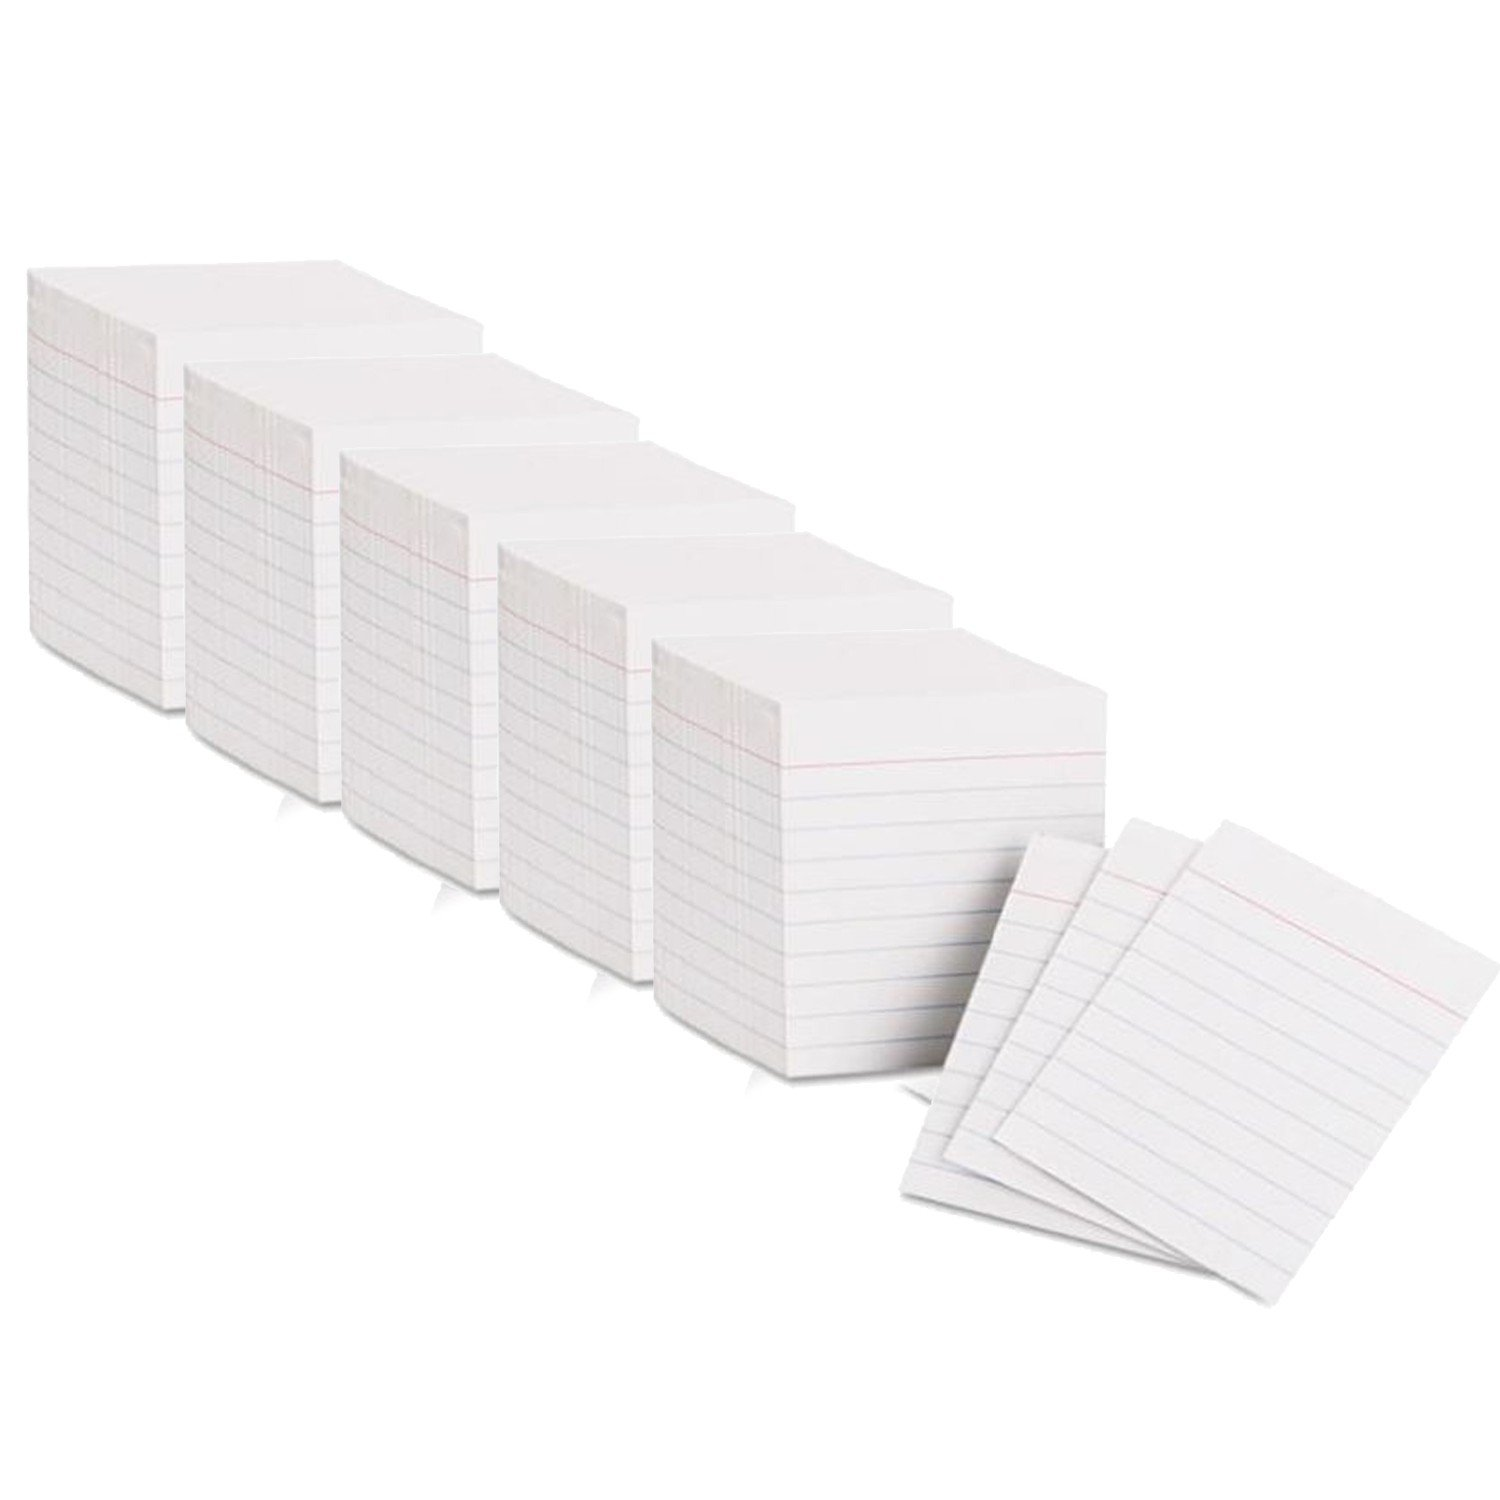 com oxford mini ruled index cards x inches white com oxford mini ruled index cards 3 x 2 5 inches white 200 per pack 10009ee half size index cards office products